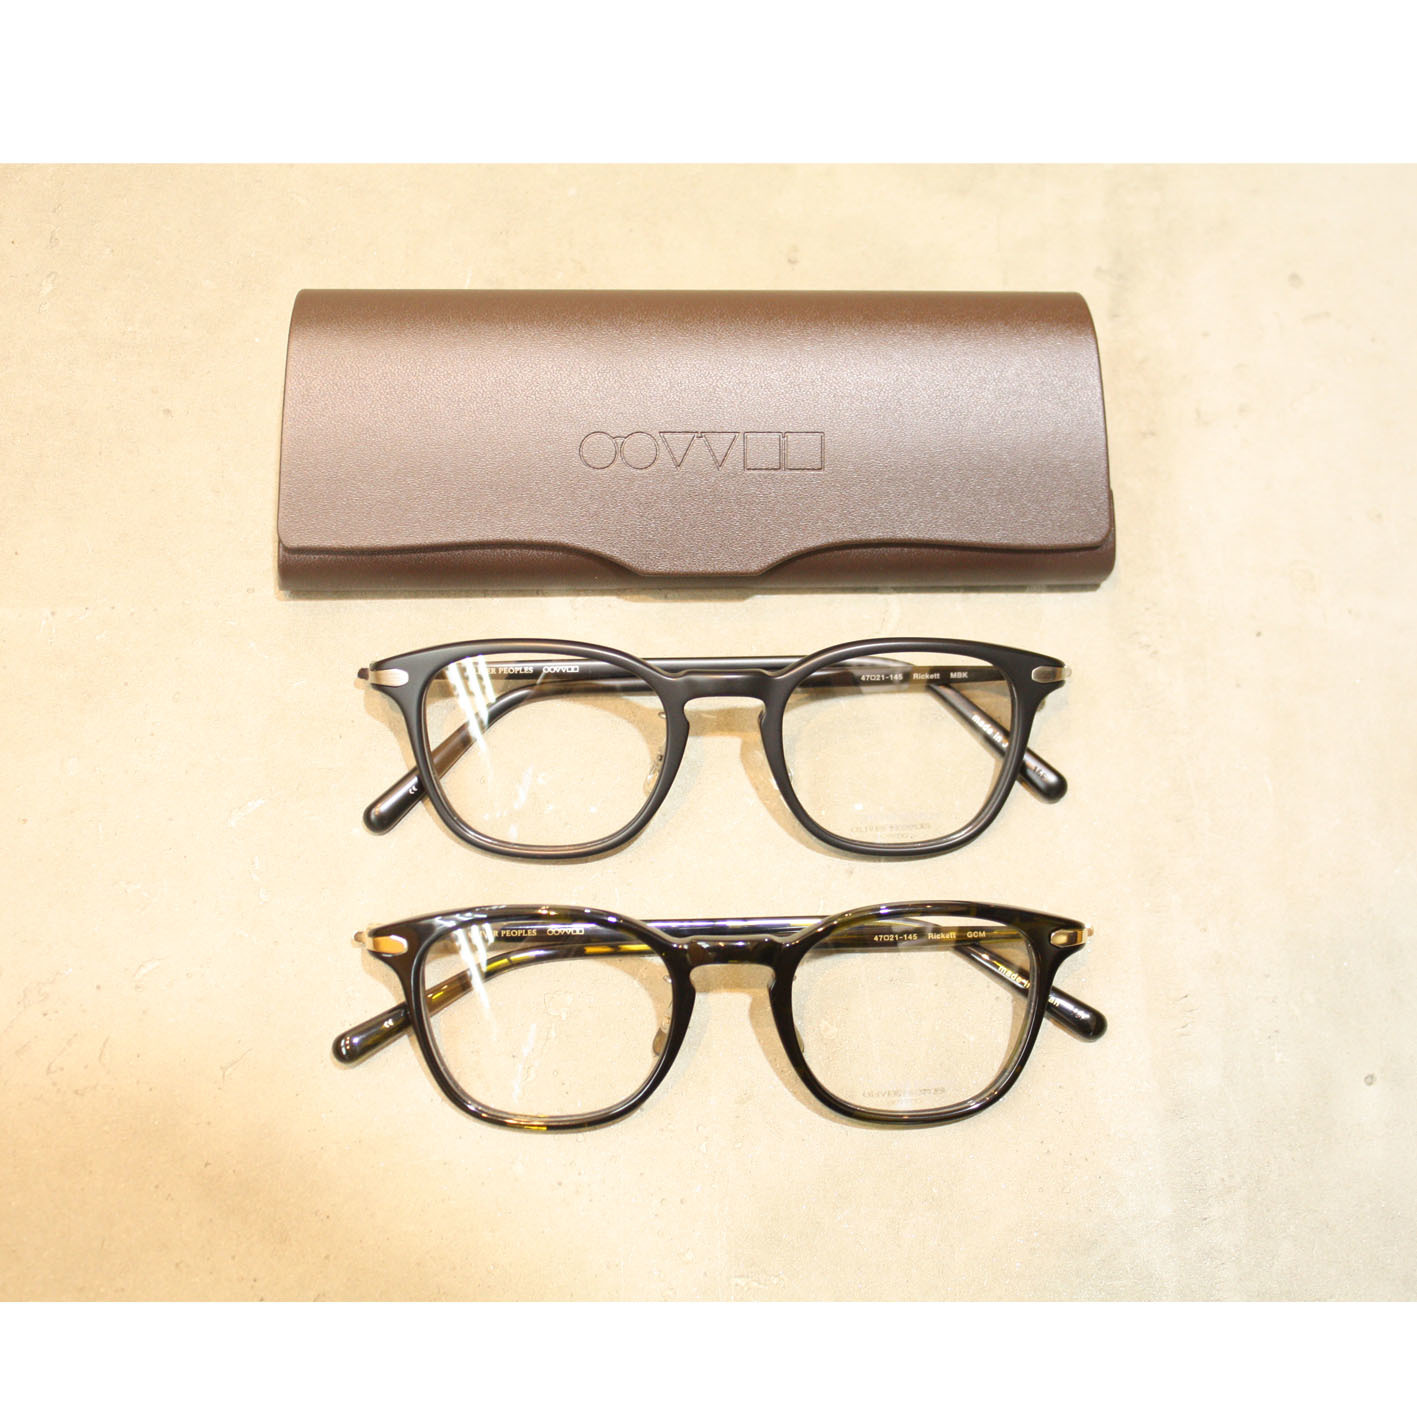 OLIVER PEOPLES 2016 NEW ARRIVAL_f0208675_22060176.jpg